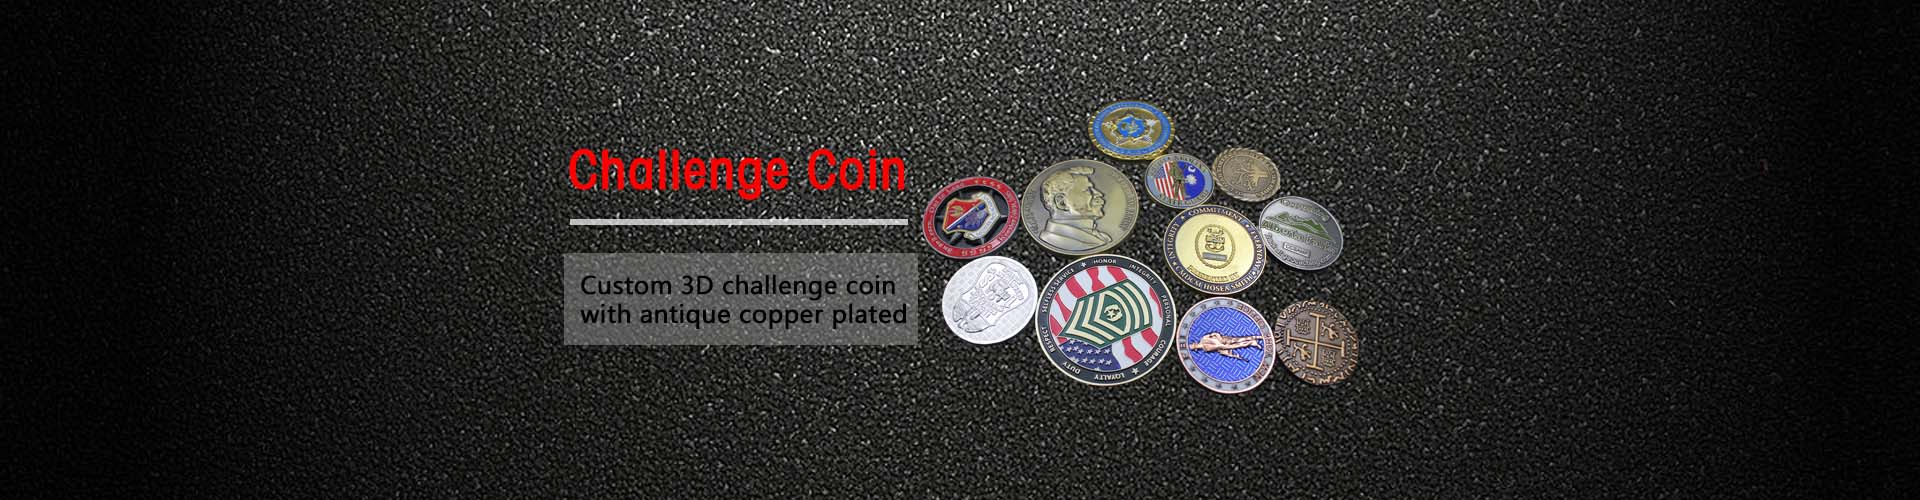 challenge coin,challenge coin manufacturer,custom challenge coin